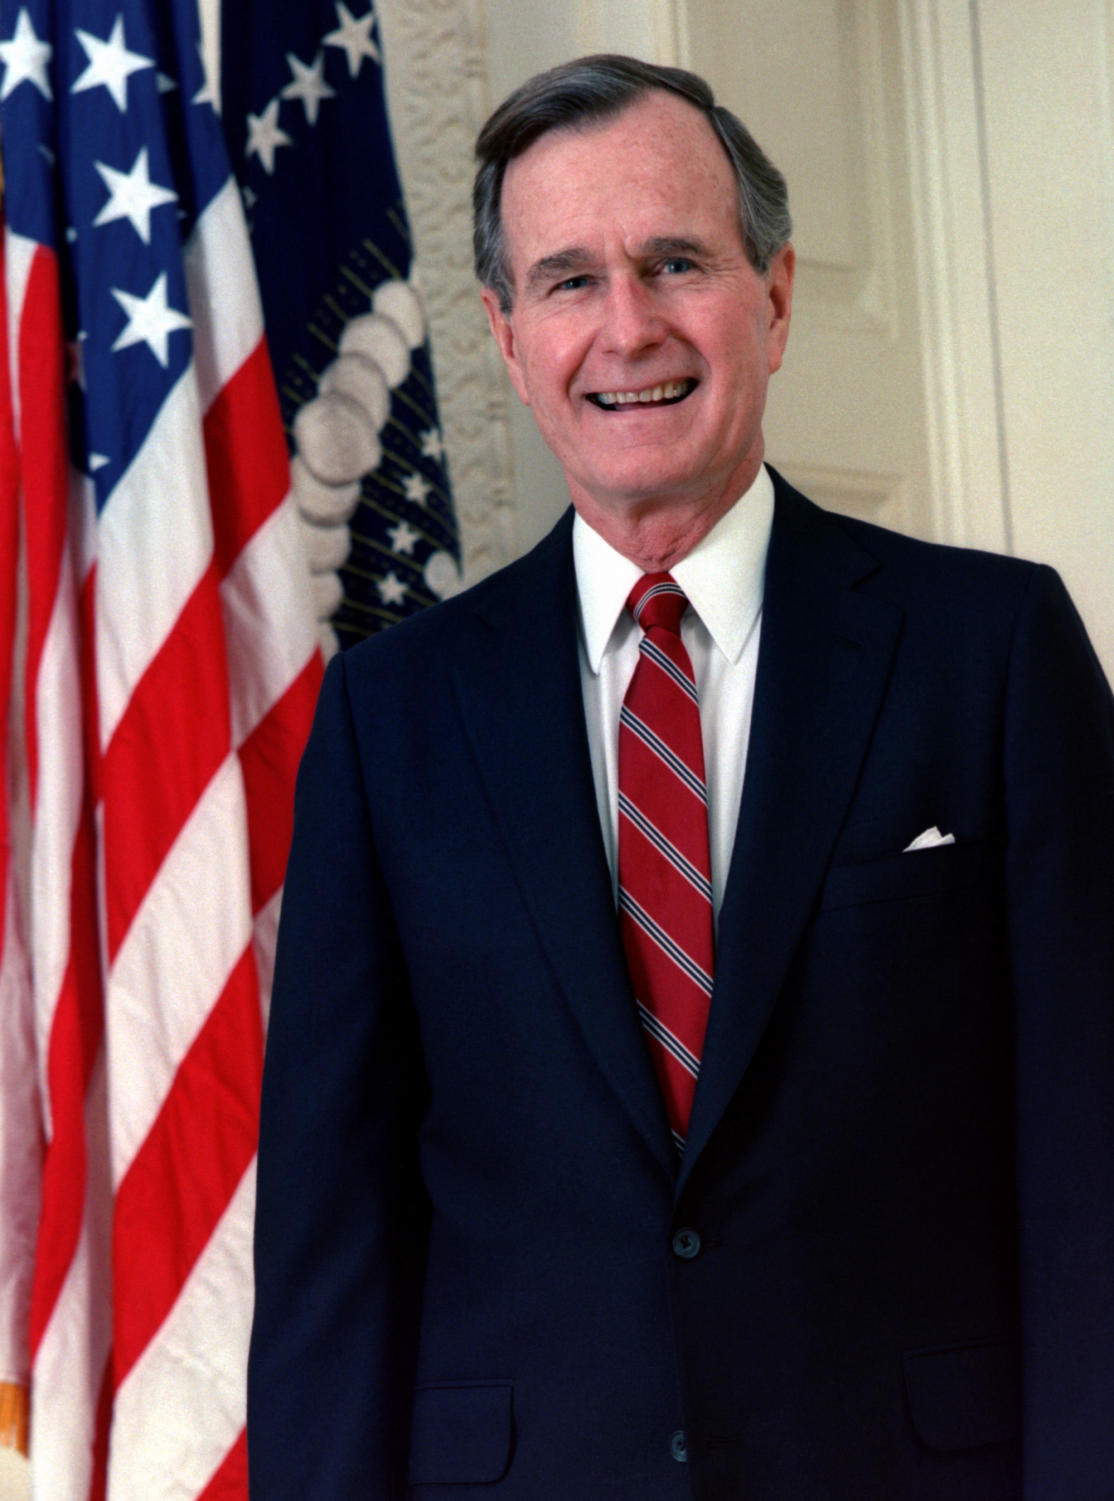 George H. W. Bush, President of the United States, 1989 official portrait.